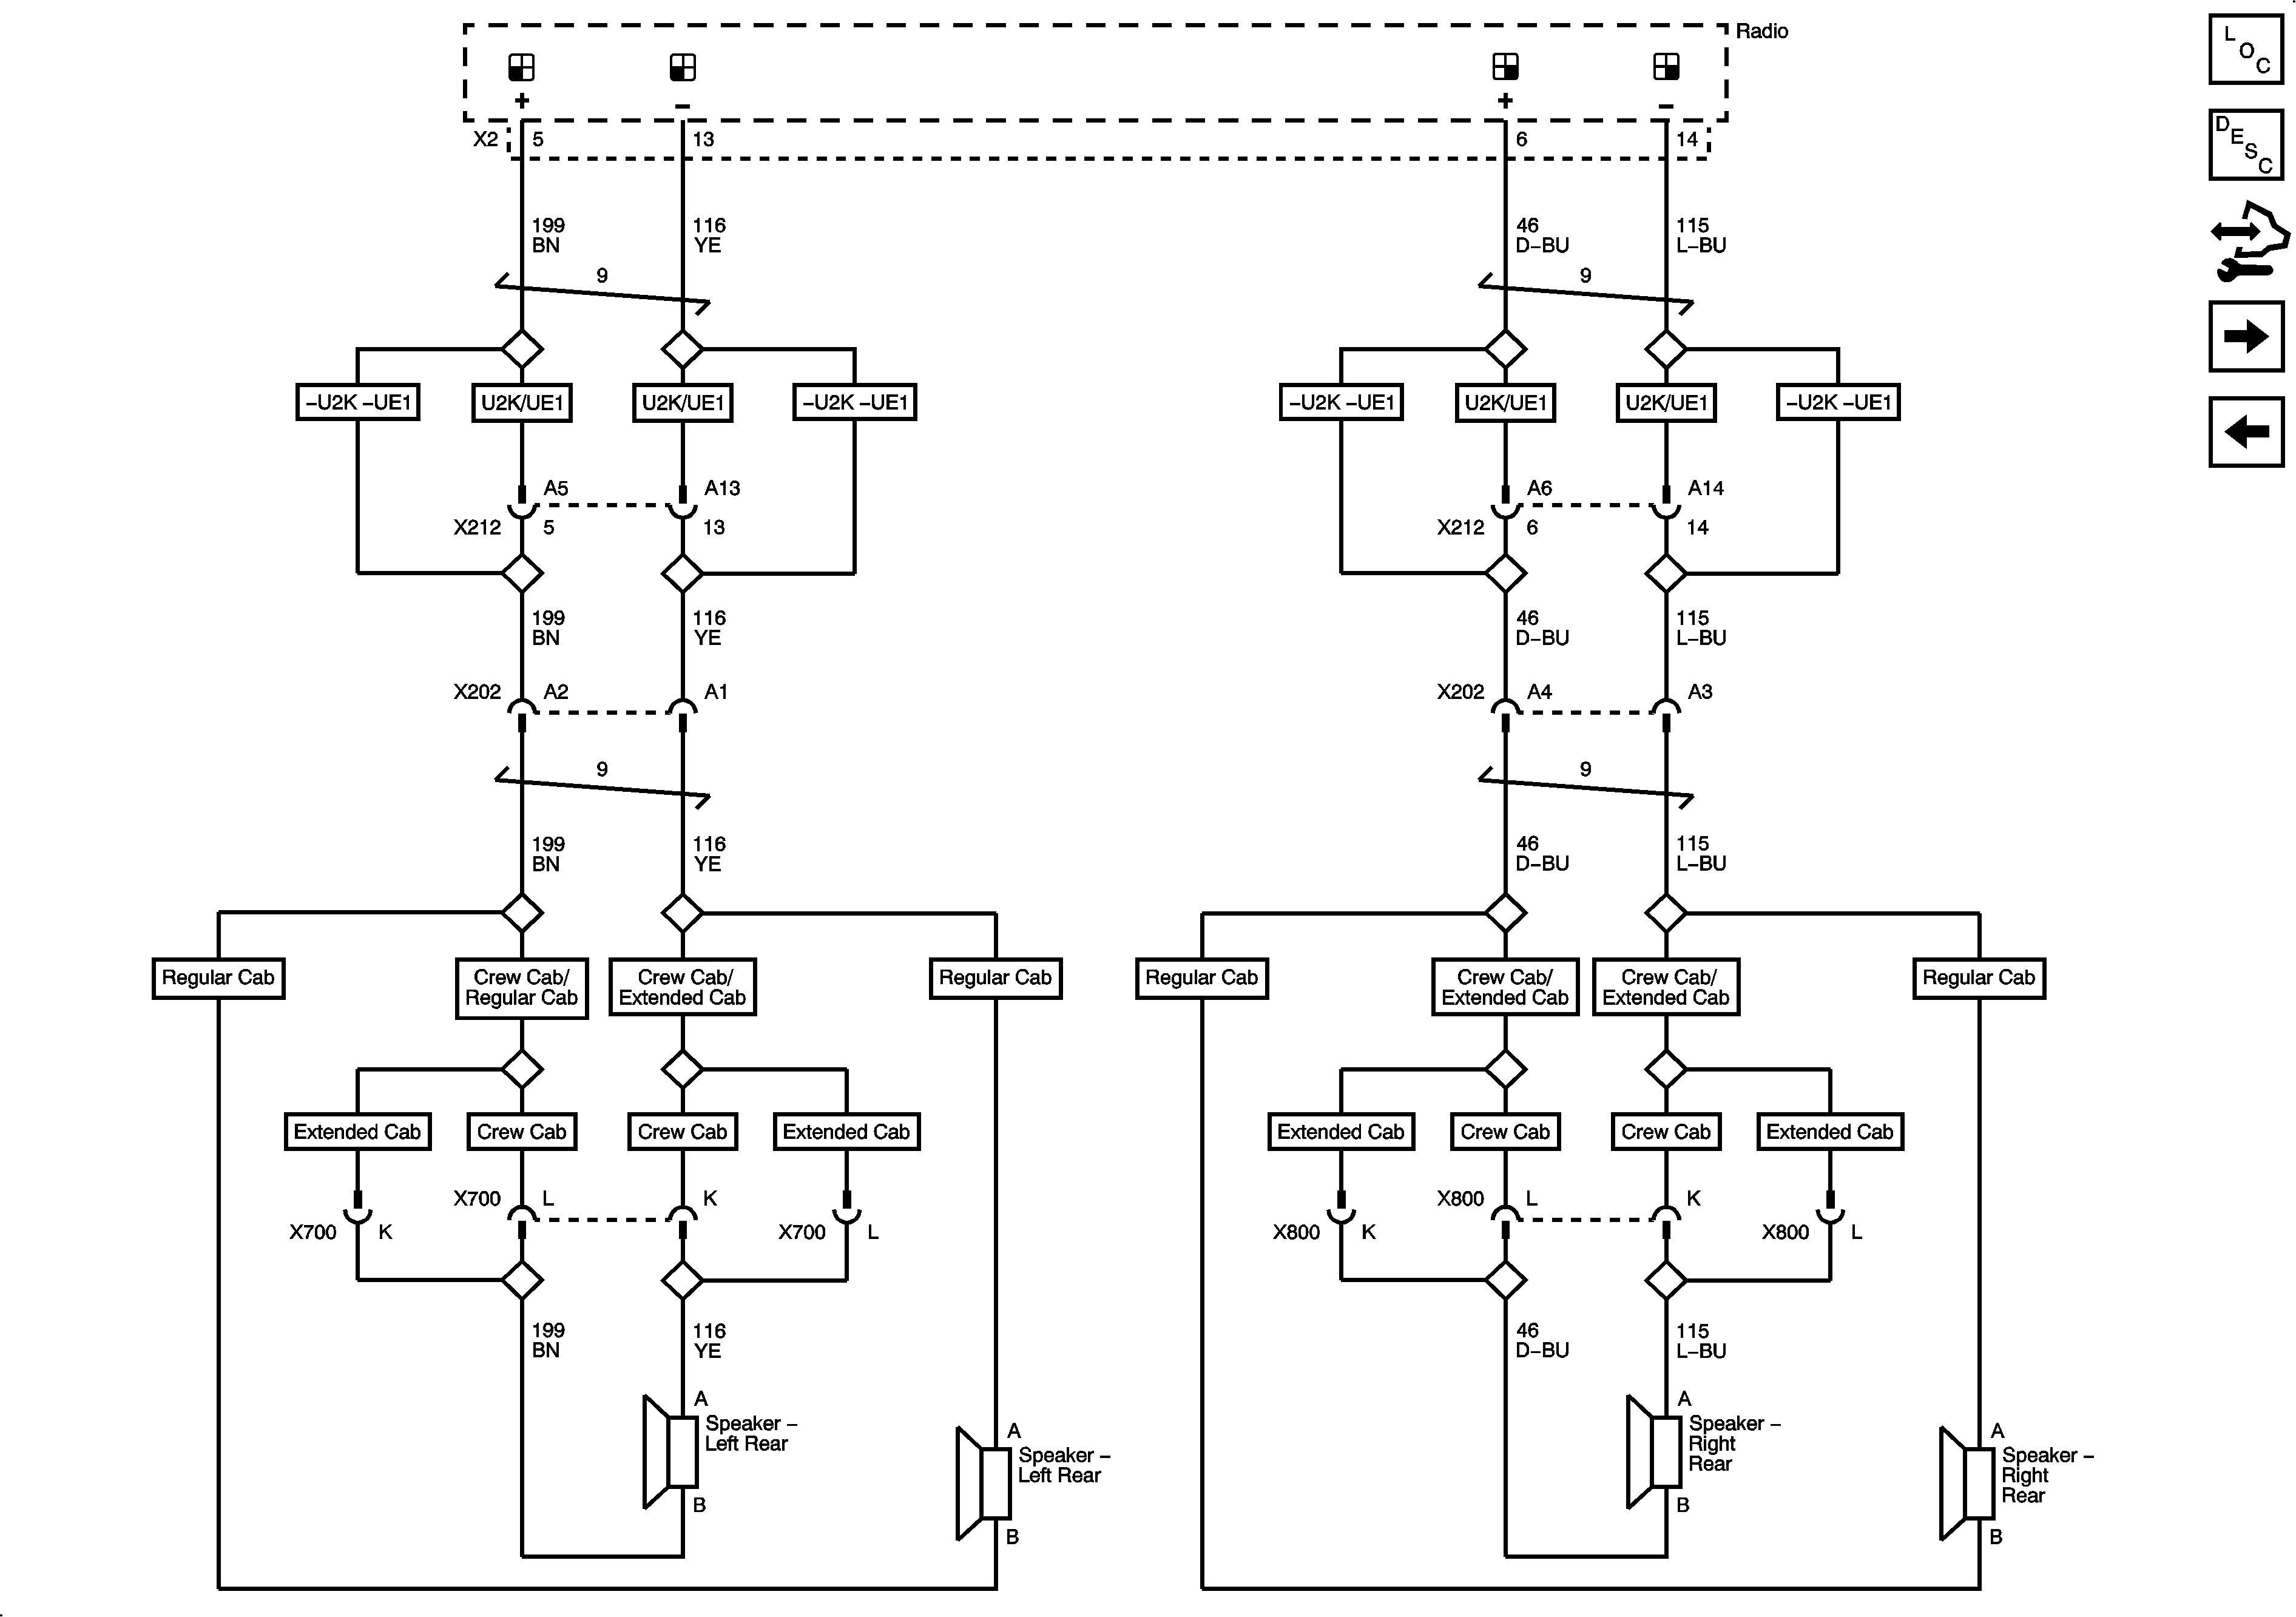 2006 ford Expedition Engine Diagram Awesome Chevy Silverado Battery Designs Of 2006 ford Expedition Engine Diagram Used 2002 F250 Wiring Harness Another Blog About Wiring Diagram •